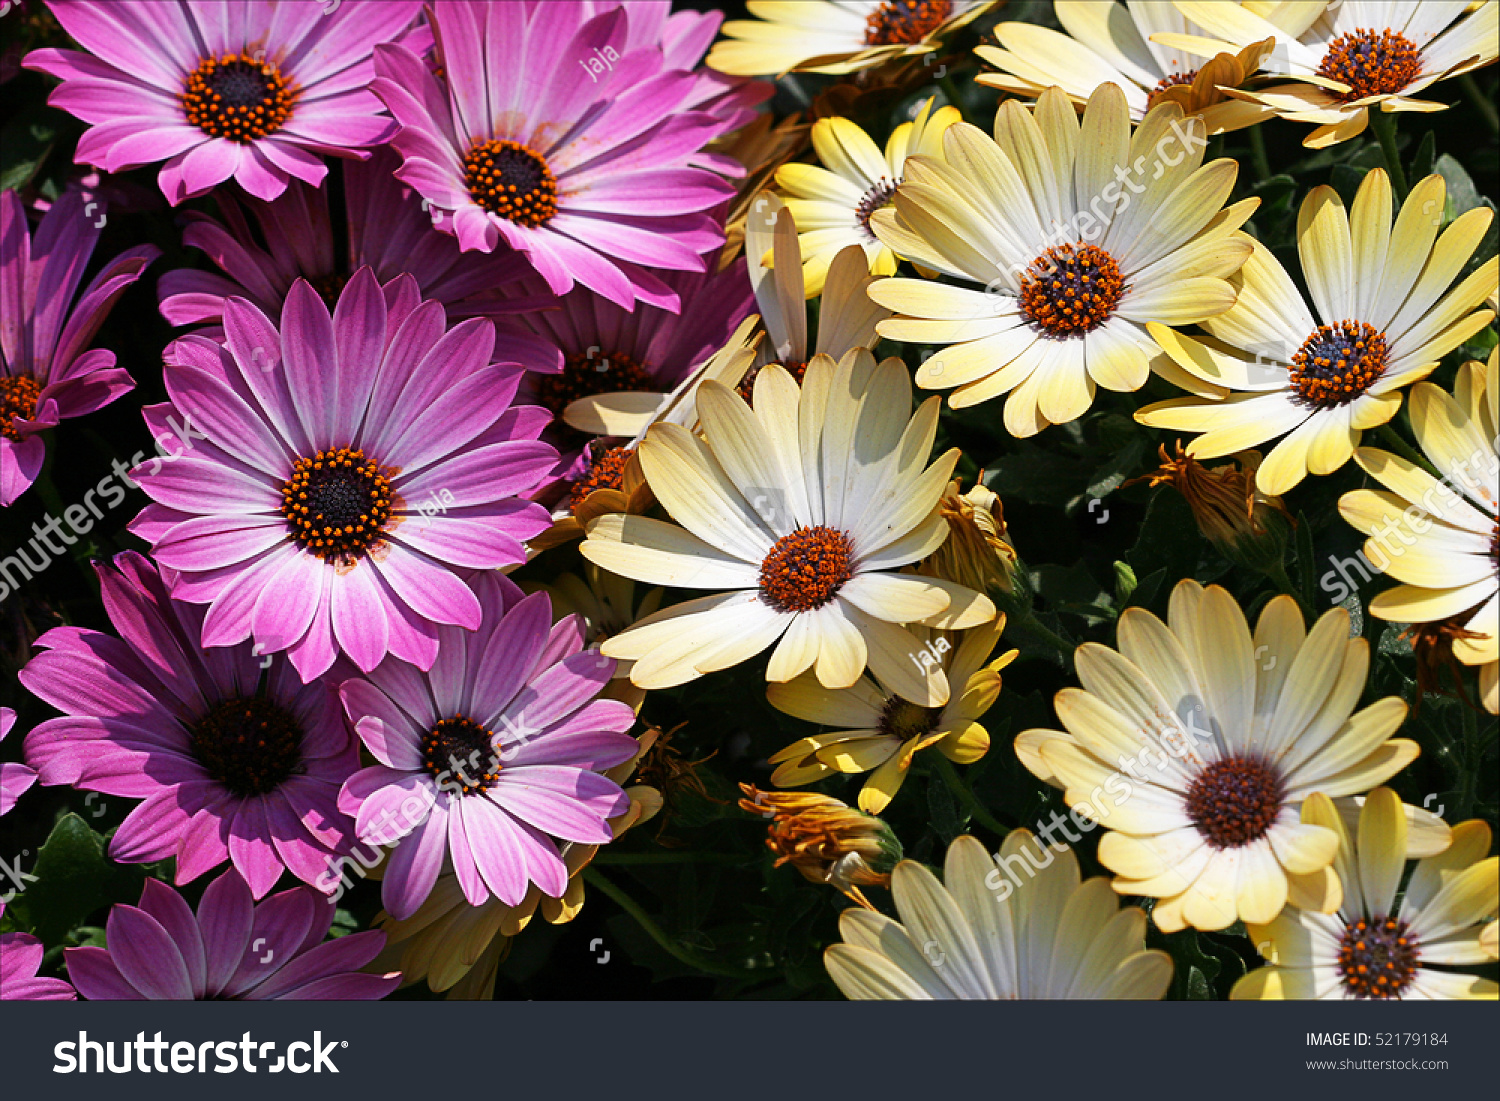 Mass Daisy Flowers Pink Yellow Stock Photo Safe To Use 52179184